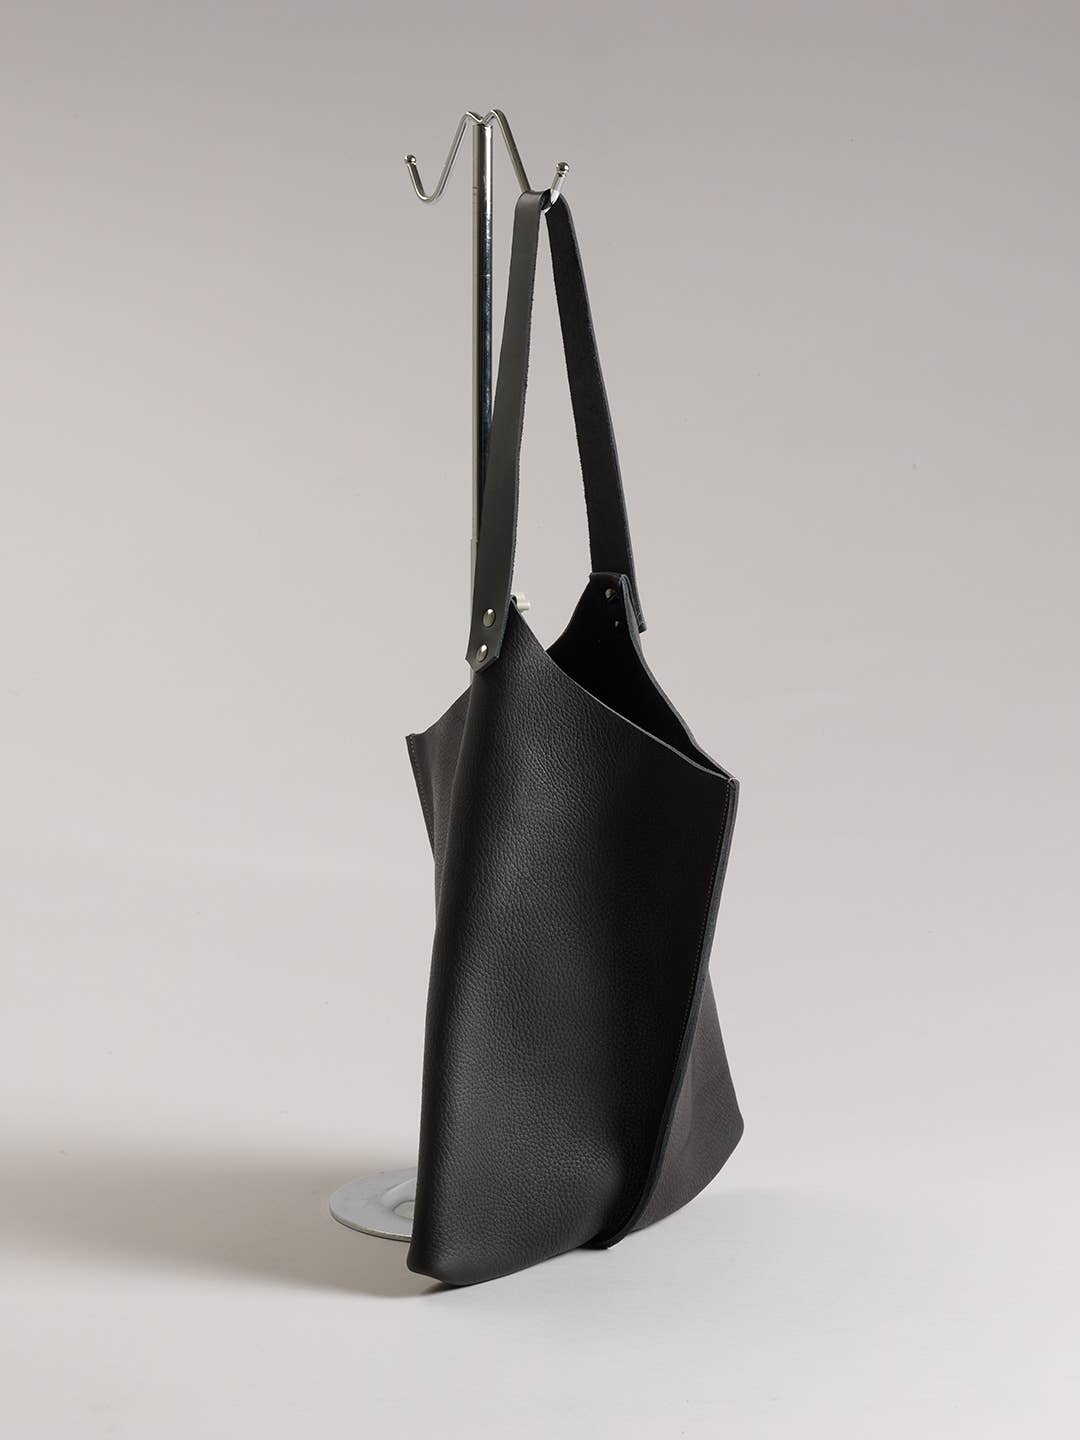 True Black  Leather Wedge Tote 16inch by Scabby Robot